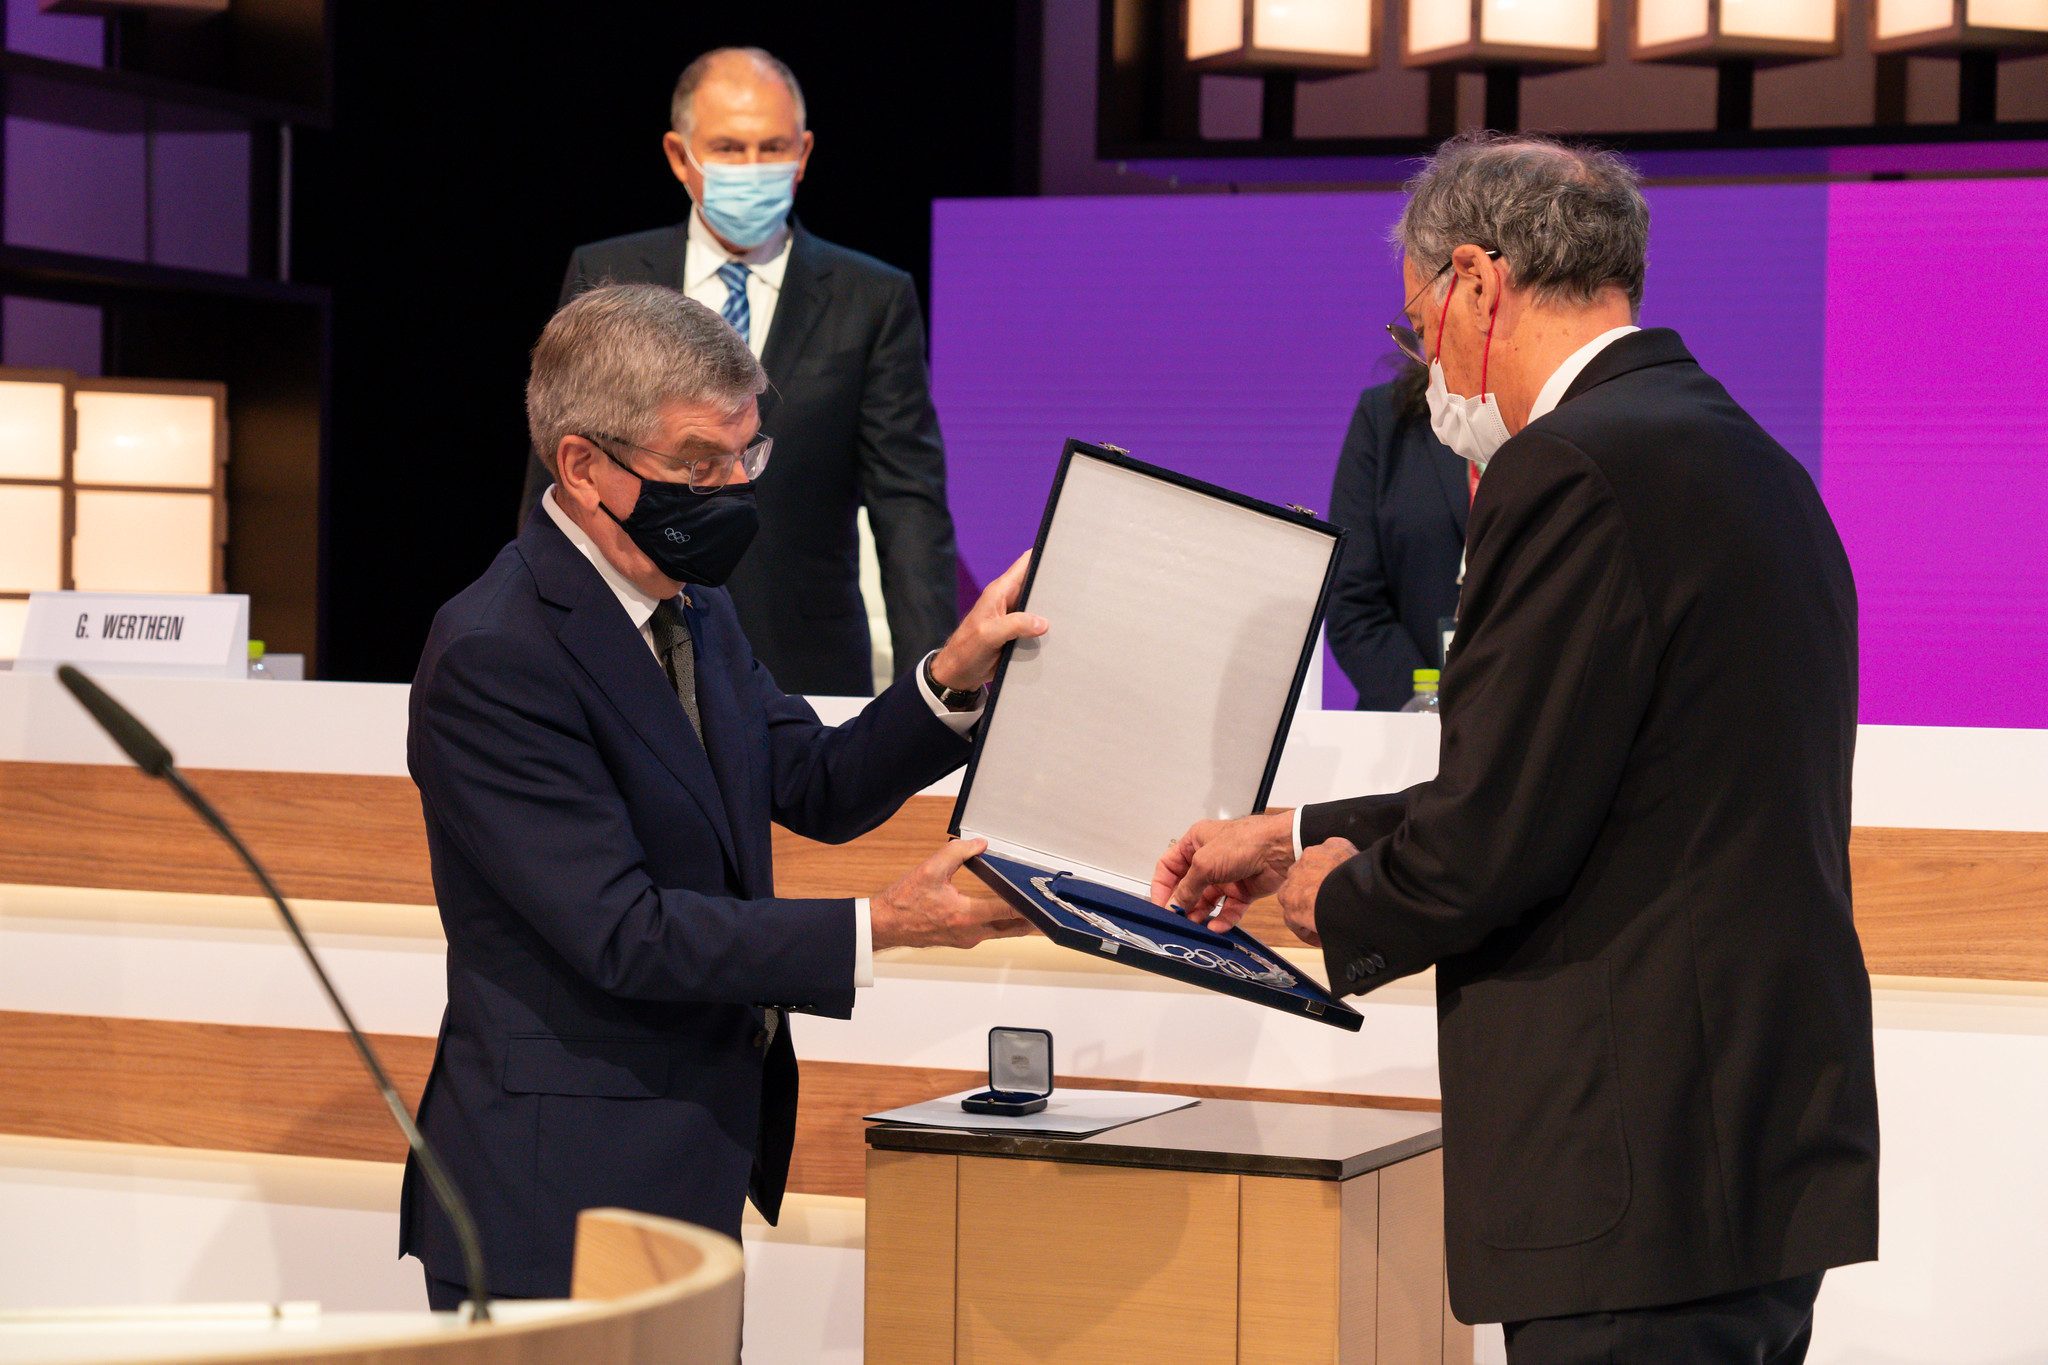 Denis Masseglia, right, received the Olympic Order from IOC President Thomas Bach ©IOC